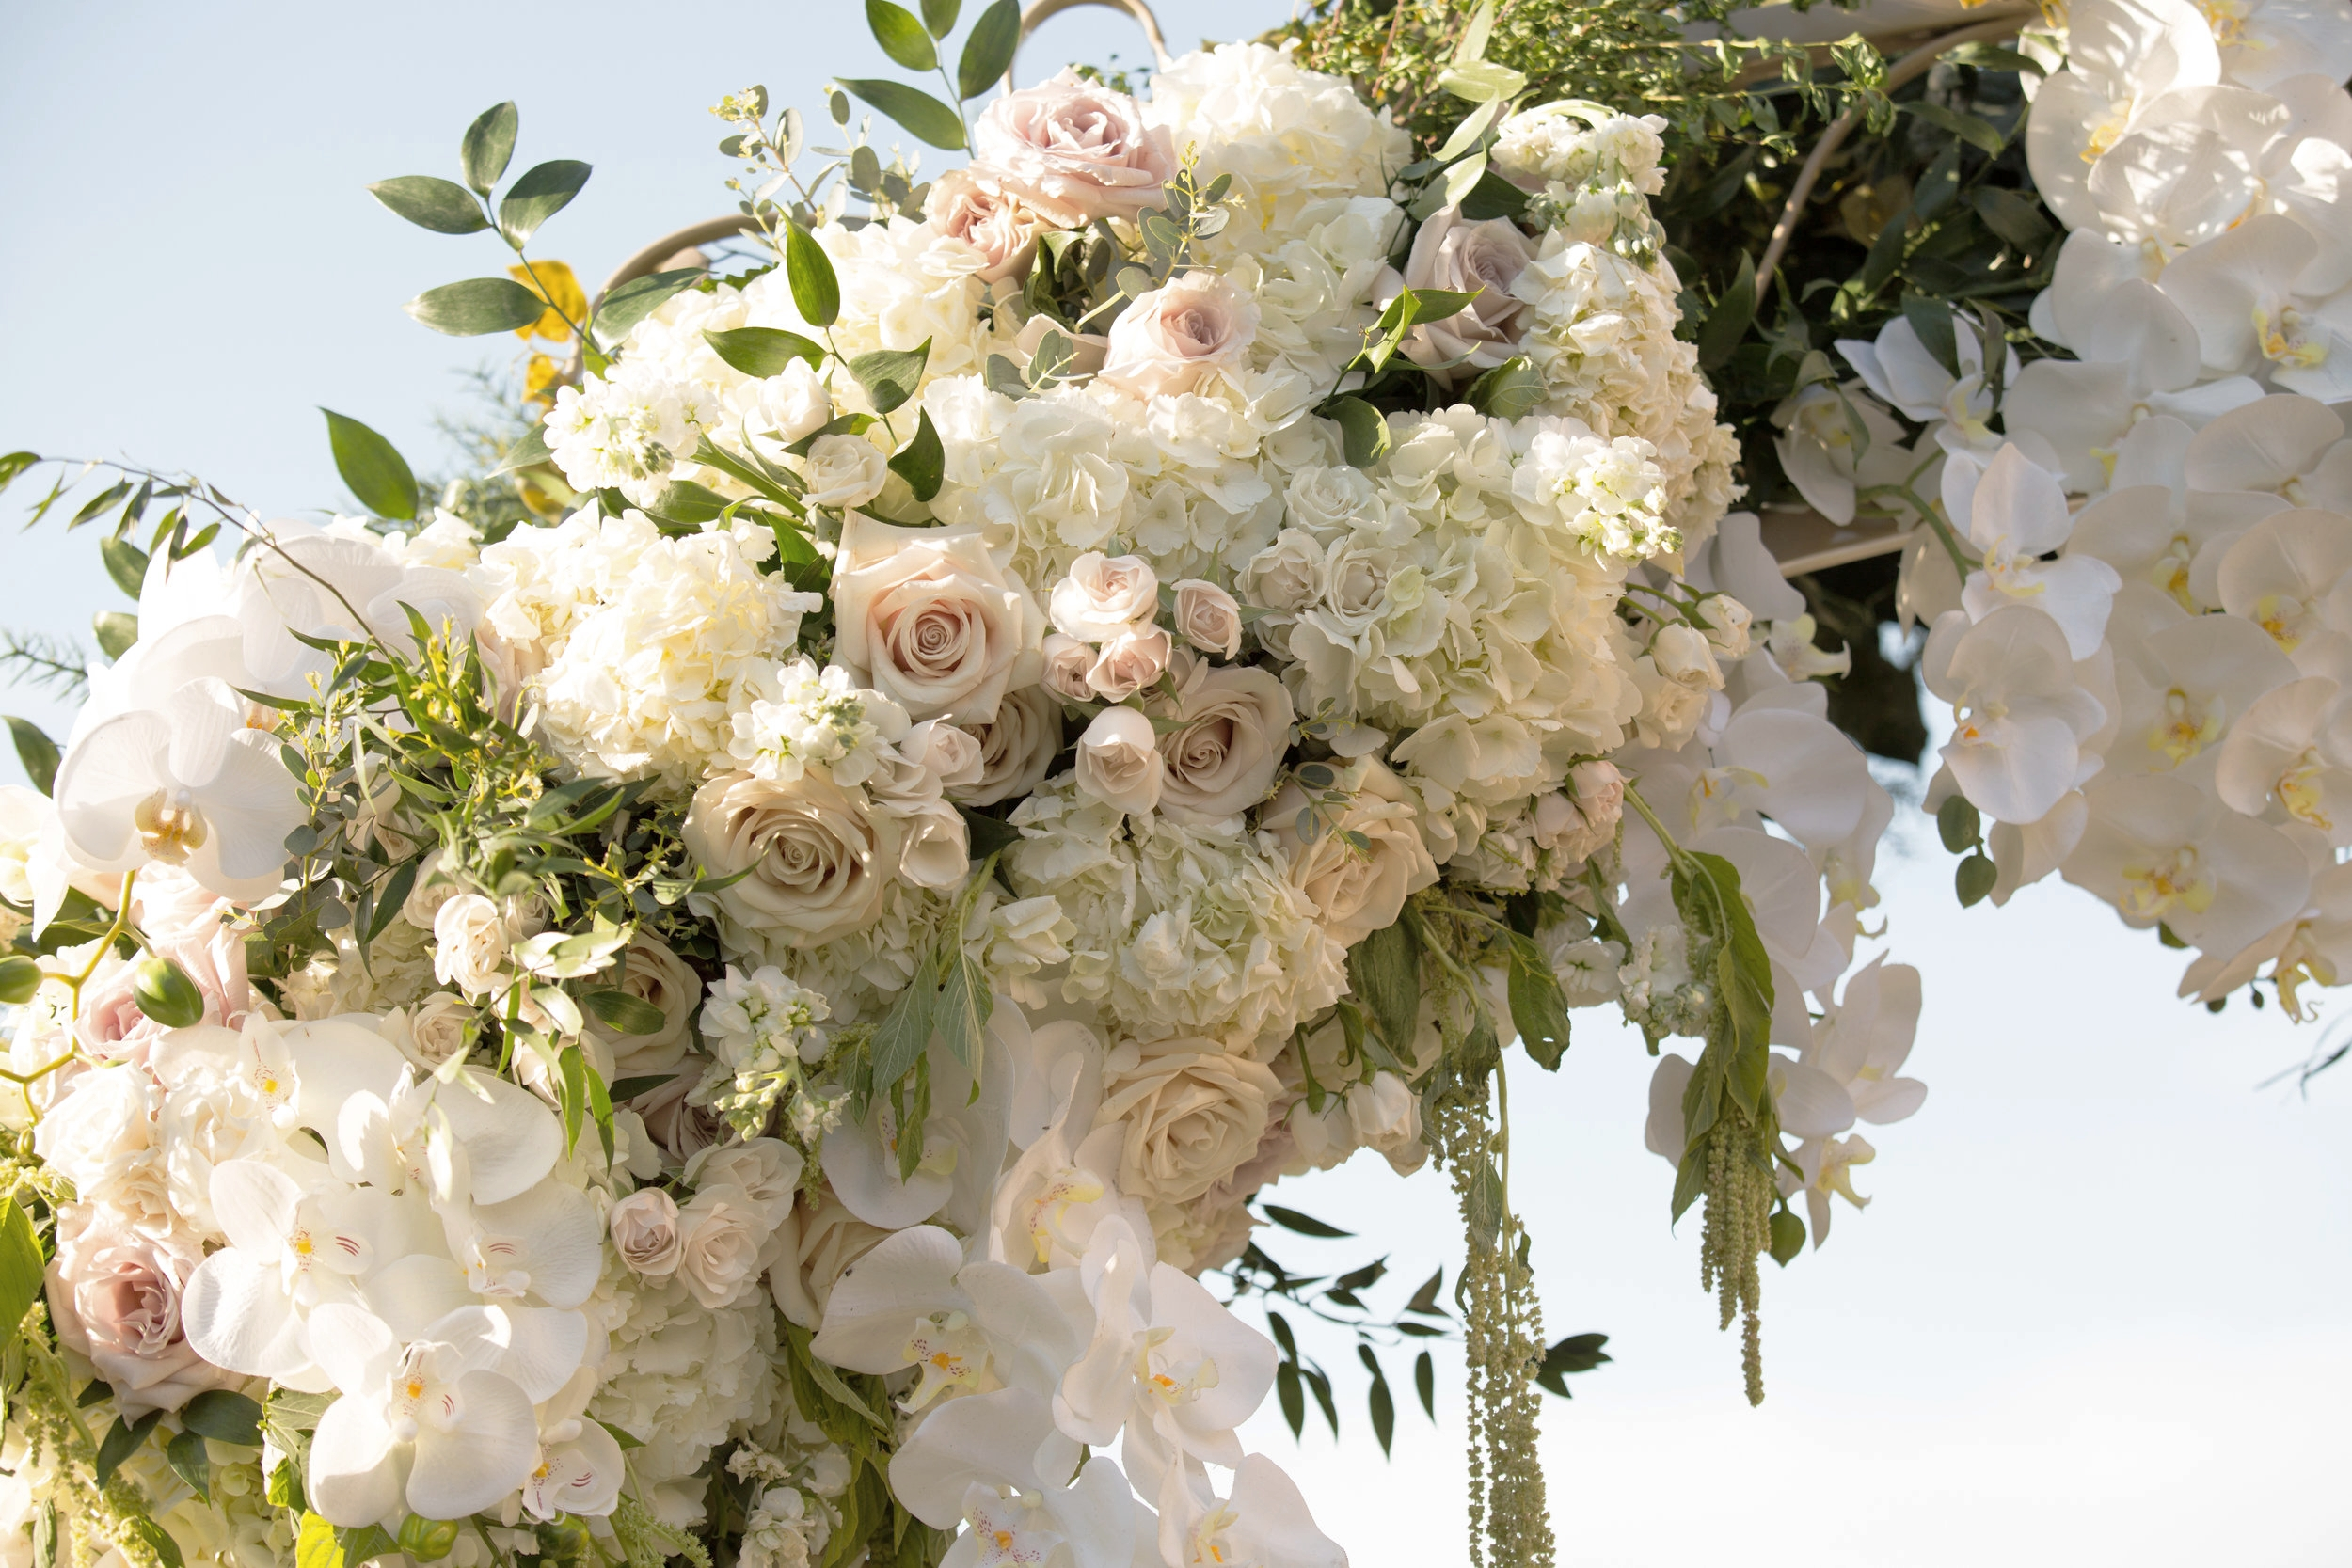 Lush hanging ceremony florals.  Luxury Destination Wedding Planning and Event Design by  Andrea Eppolito Events  · Photos by  Stephen Salazar